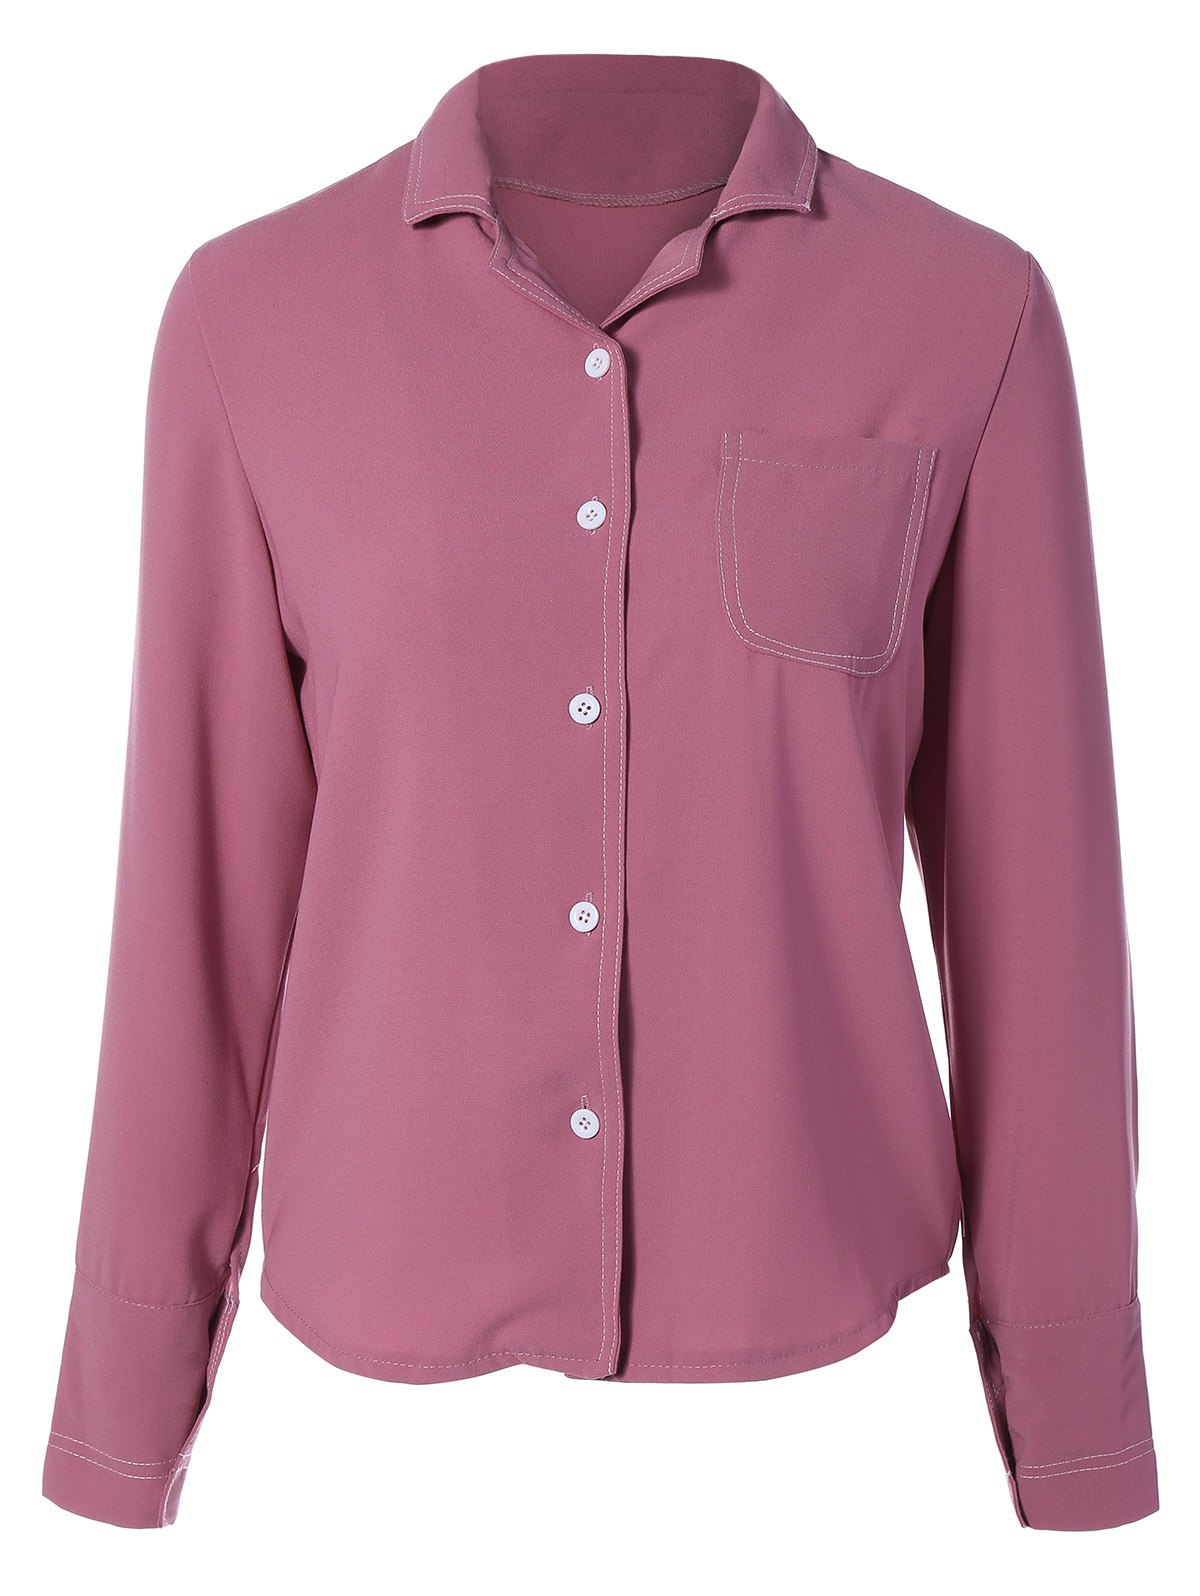 Single-Breasted Lapel Collar ShirtClothes<br><br><br>Size: M<br>Color: WINE RED